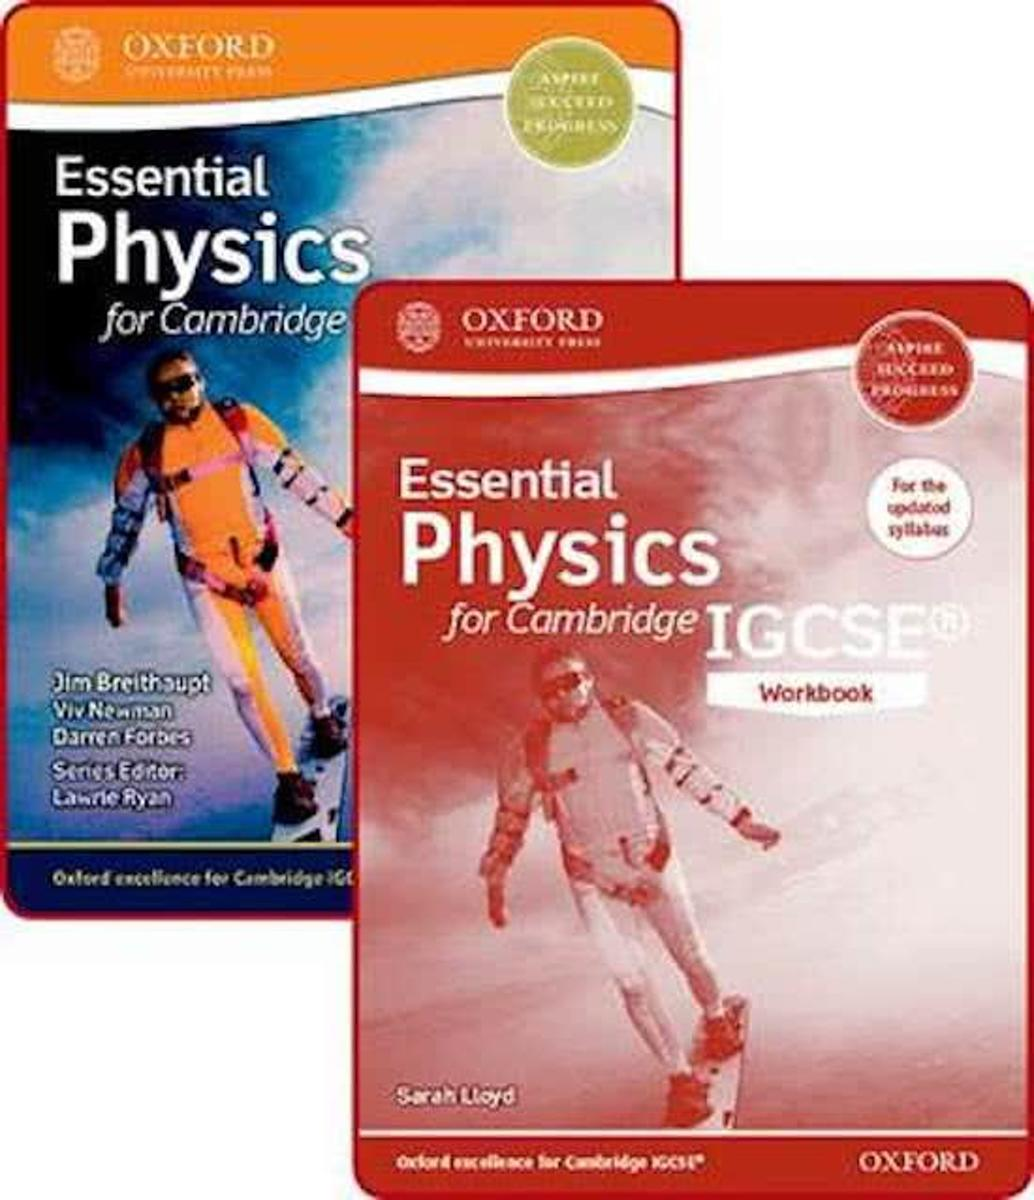 Essential Physics for Cambridge IGCSE (R) Student Book and Workbook Pack